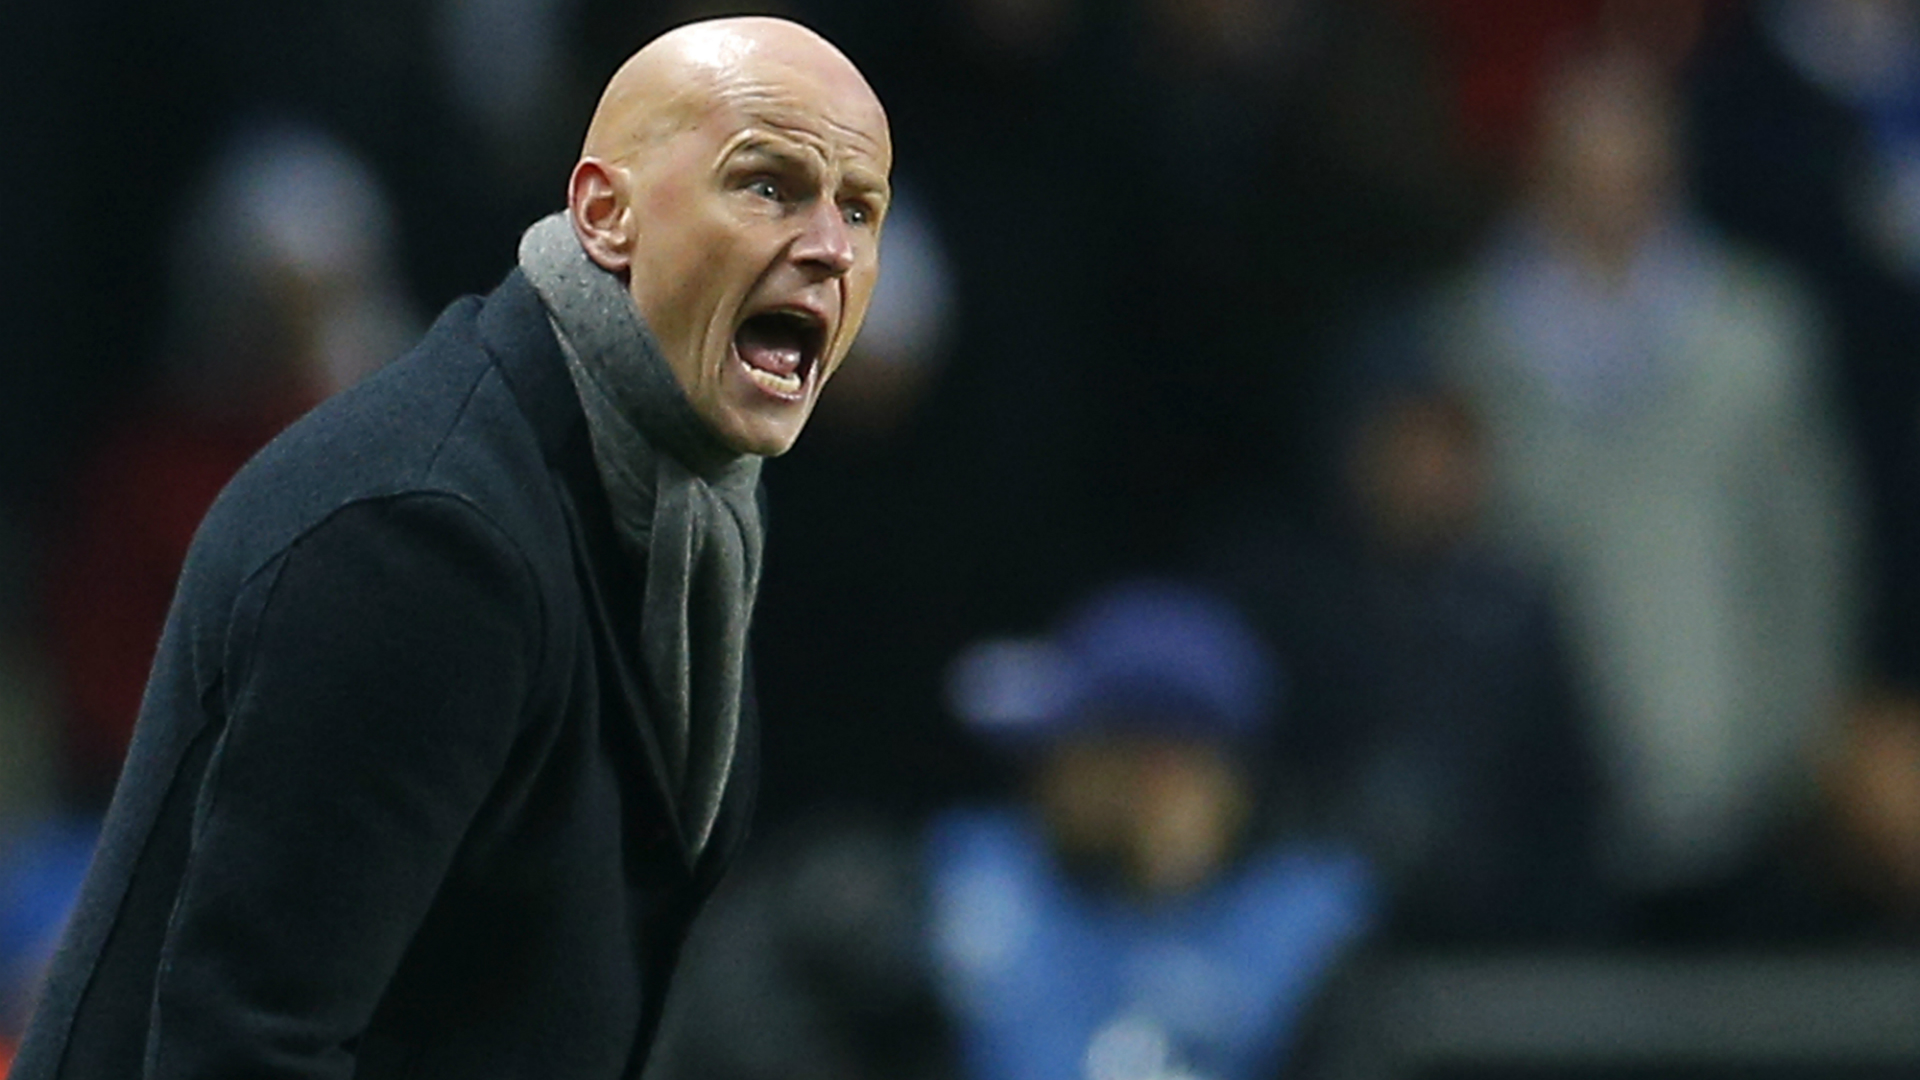 Copenhagen need to be 'perfect' against Man Utd, says Solbakken